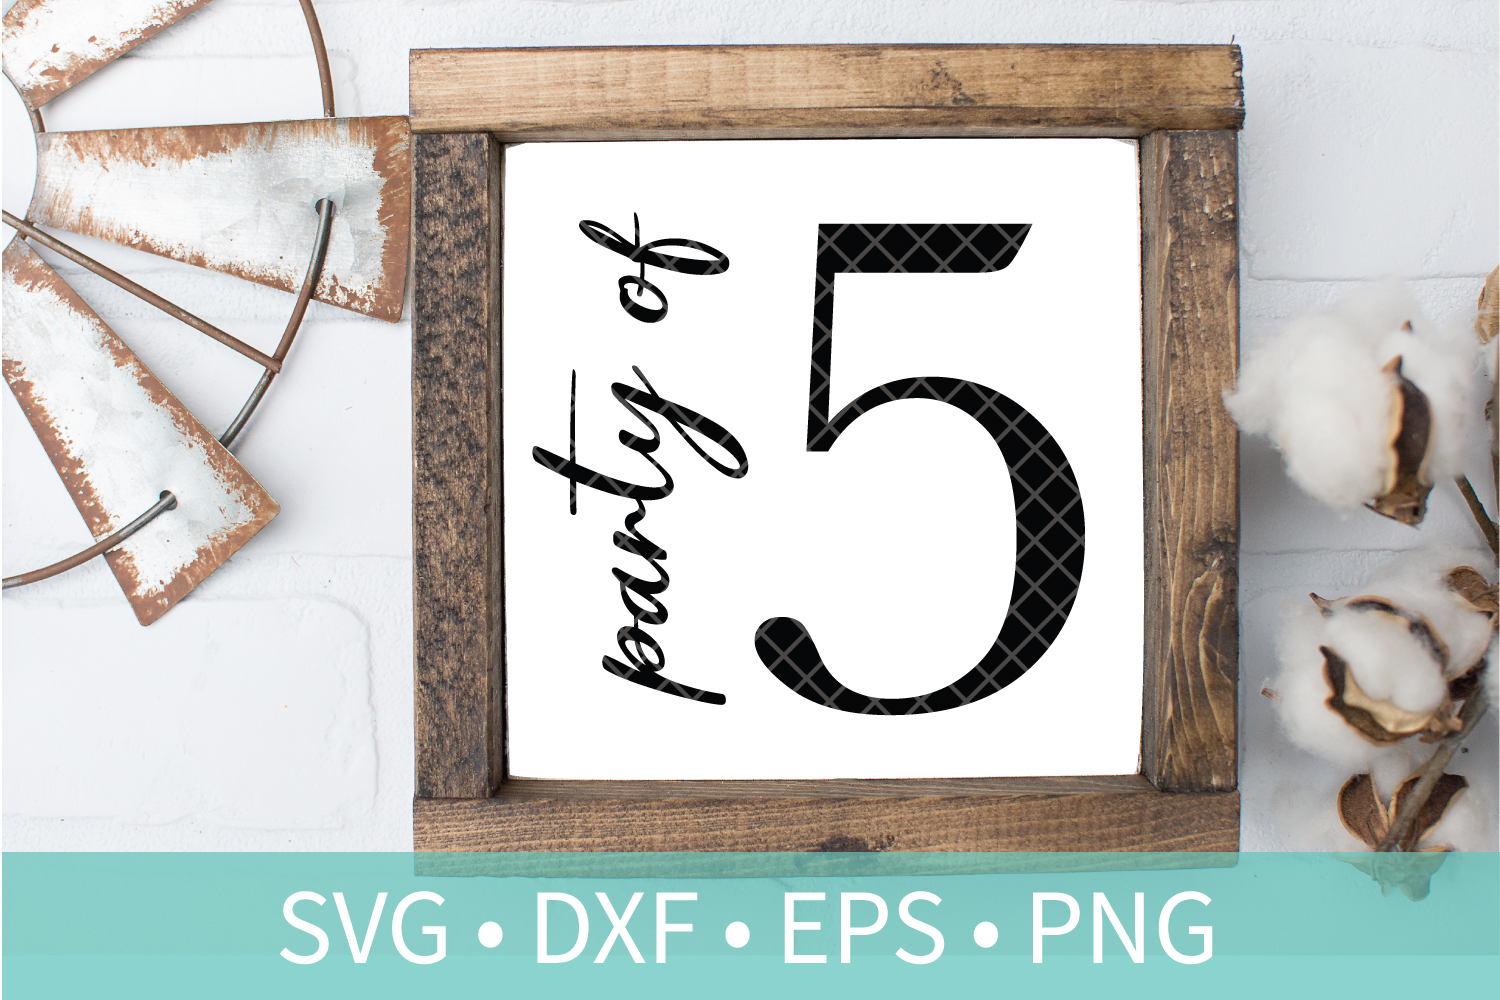 Party of 5 Family Sign SVG DXF EPS PNG Clipart Cut File example image 1